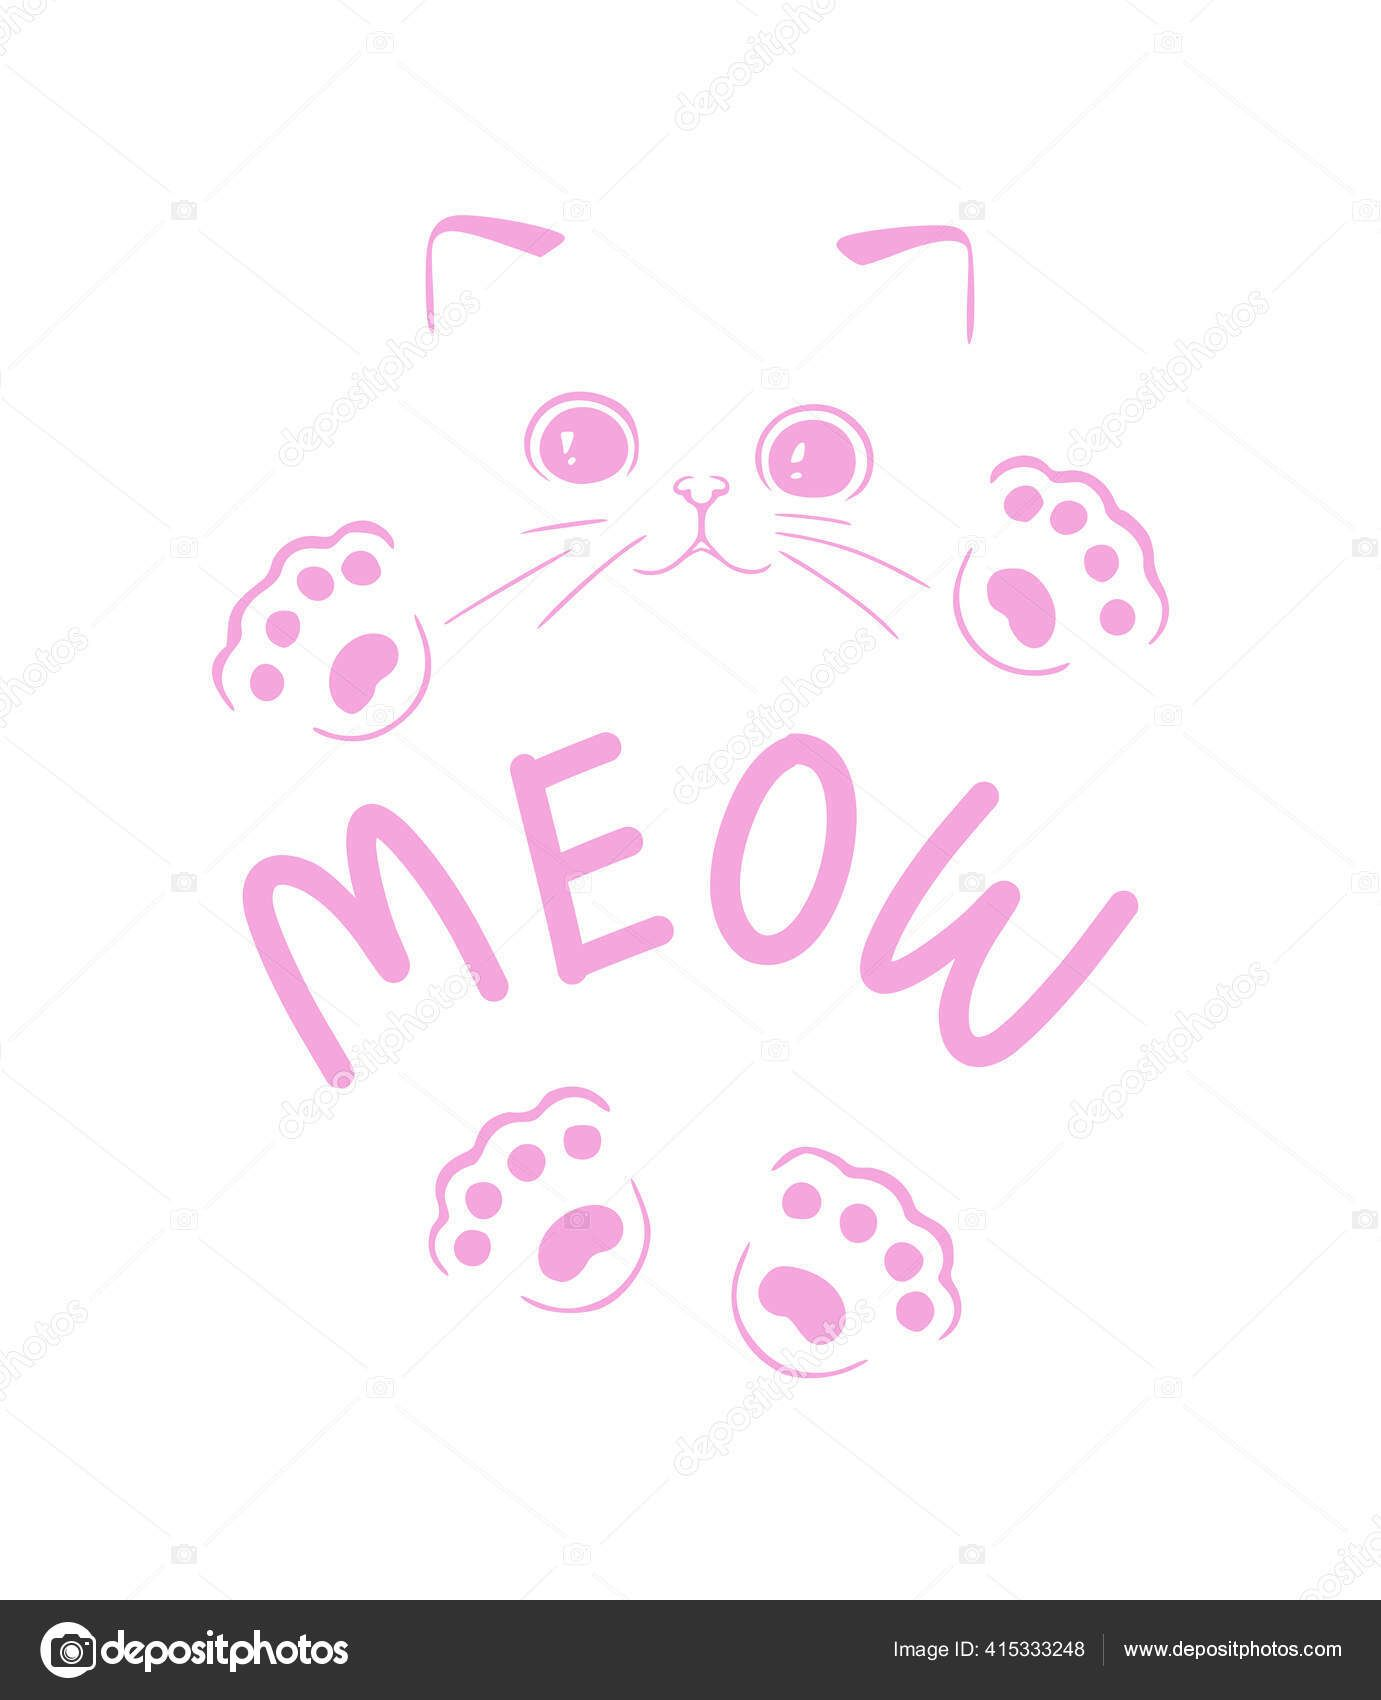 Cute Cat Paw Drawing : drawing, Outline, Cartoon, Kawaii, Silhouette, Drawing, Lettering, Paws., Drawing,, Kittens, Funny,